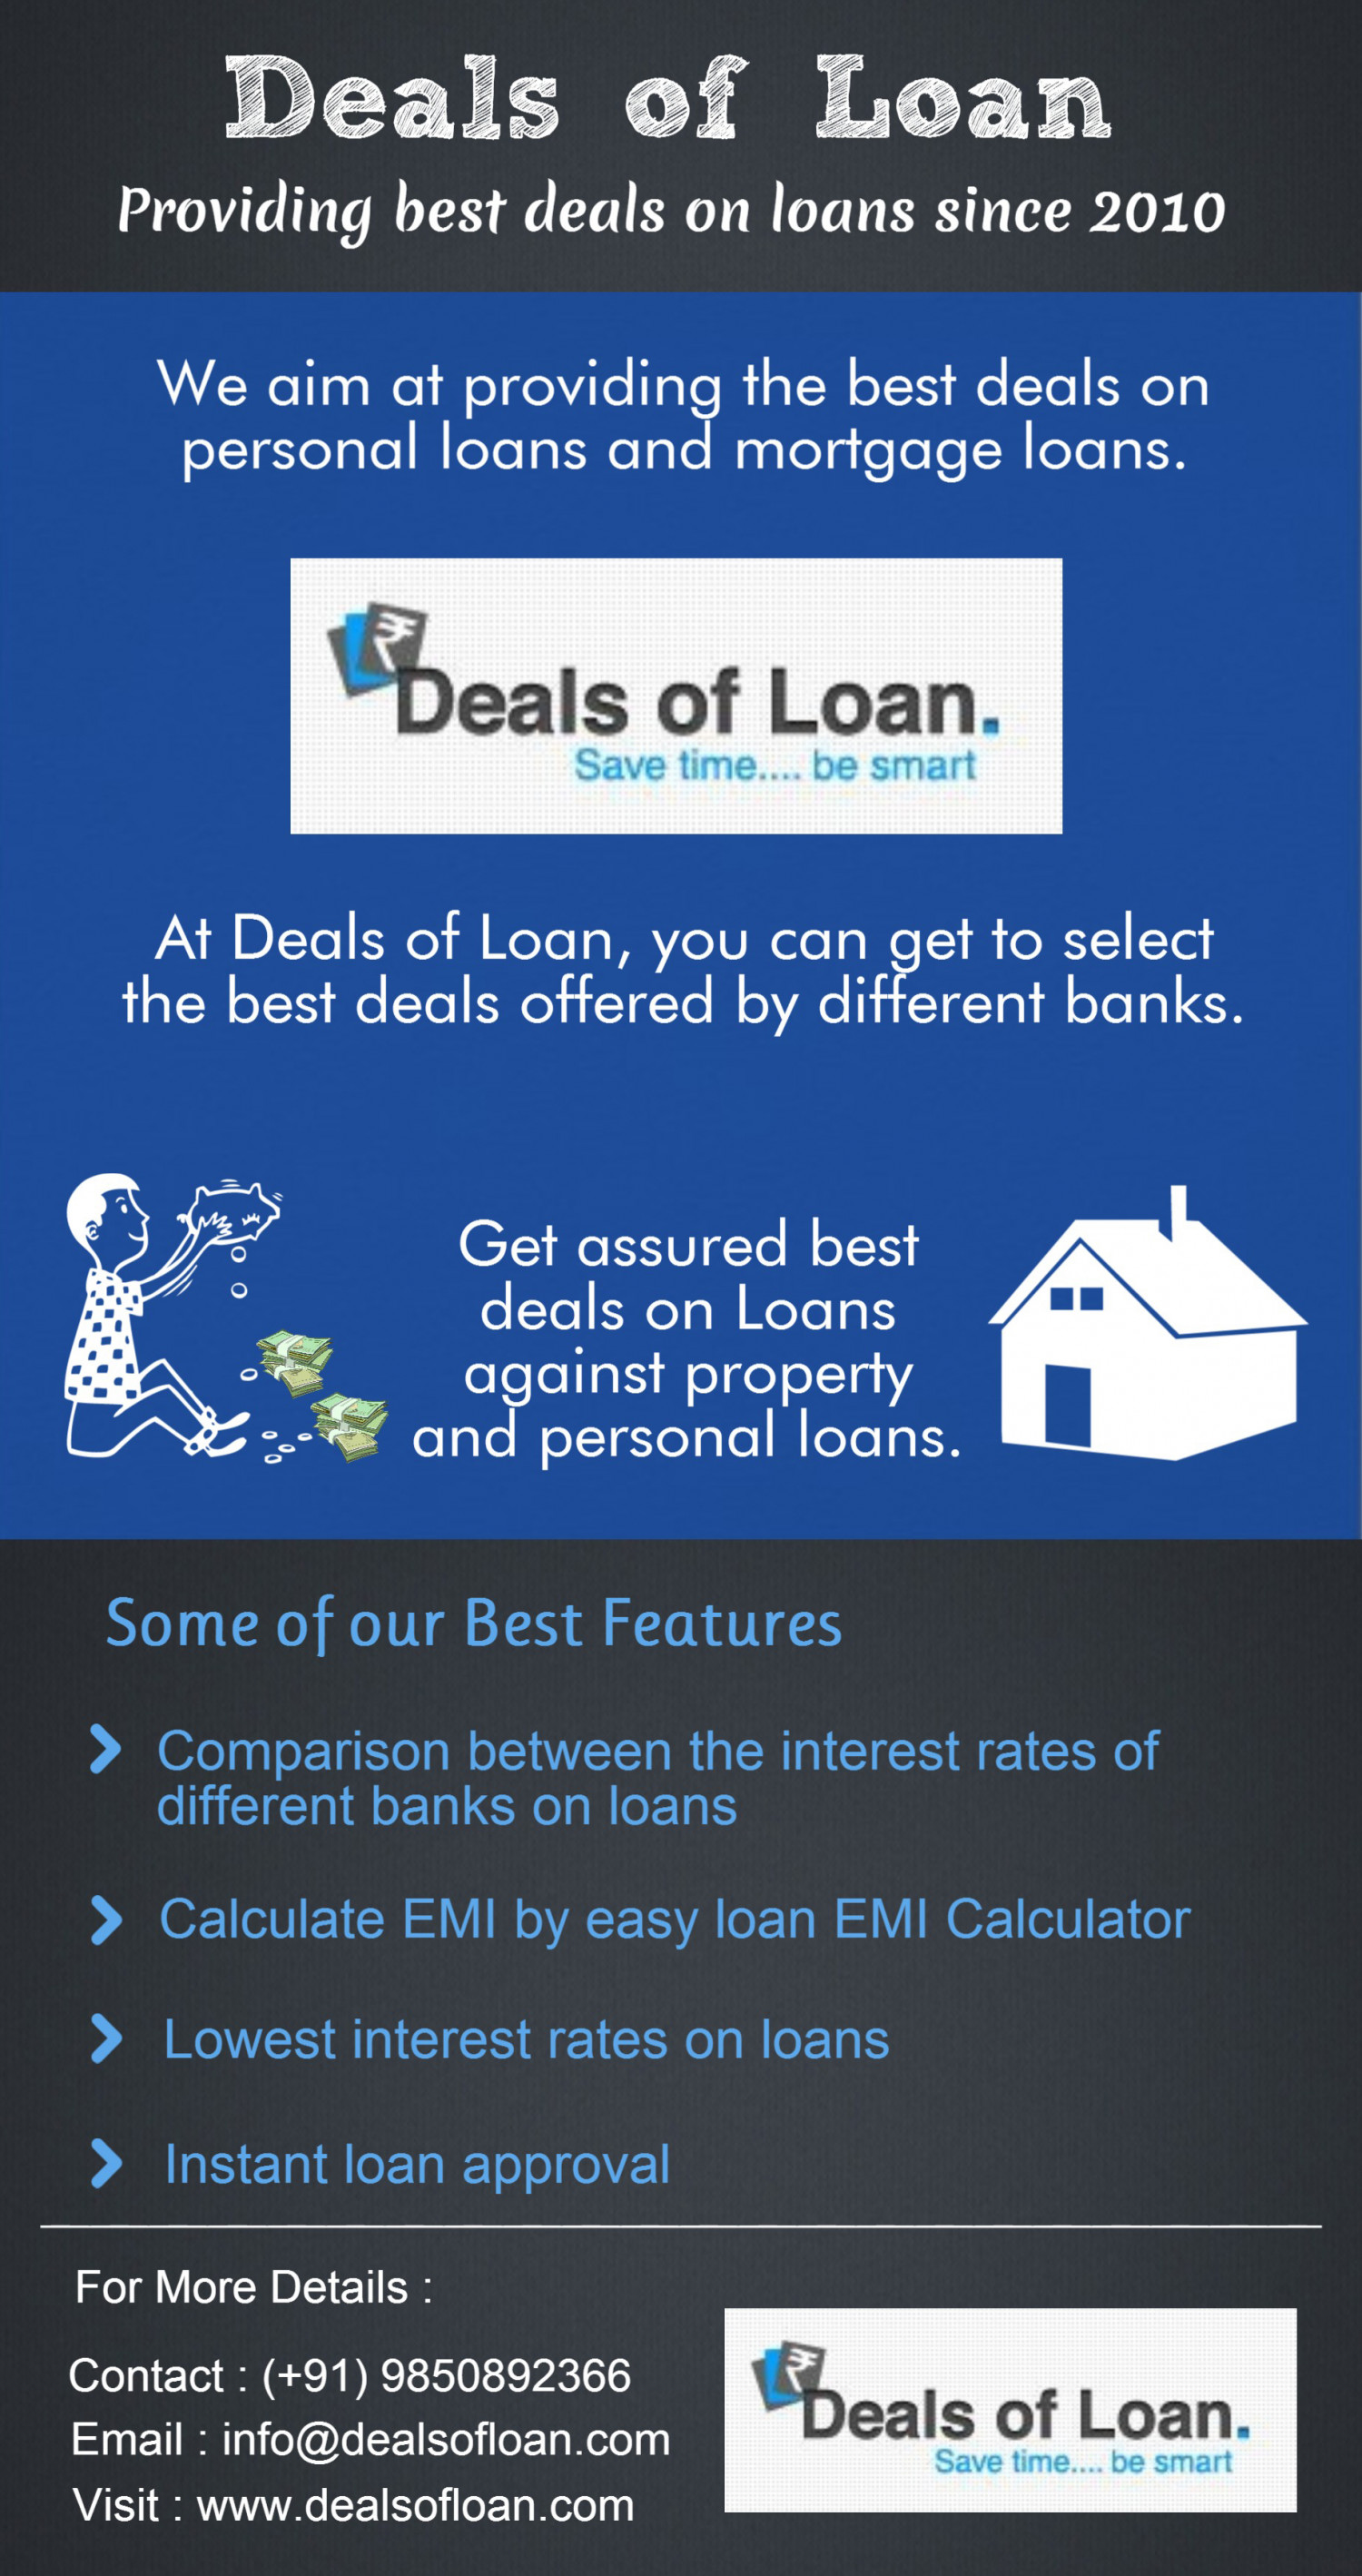 Get fixed interest rates on loan for 5 years- Deals of Loan Infographic